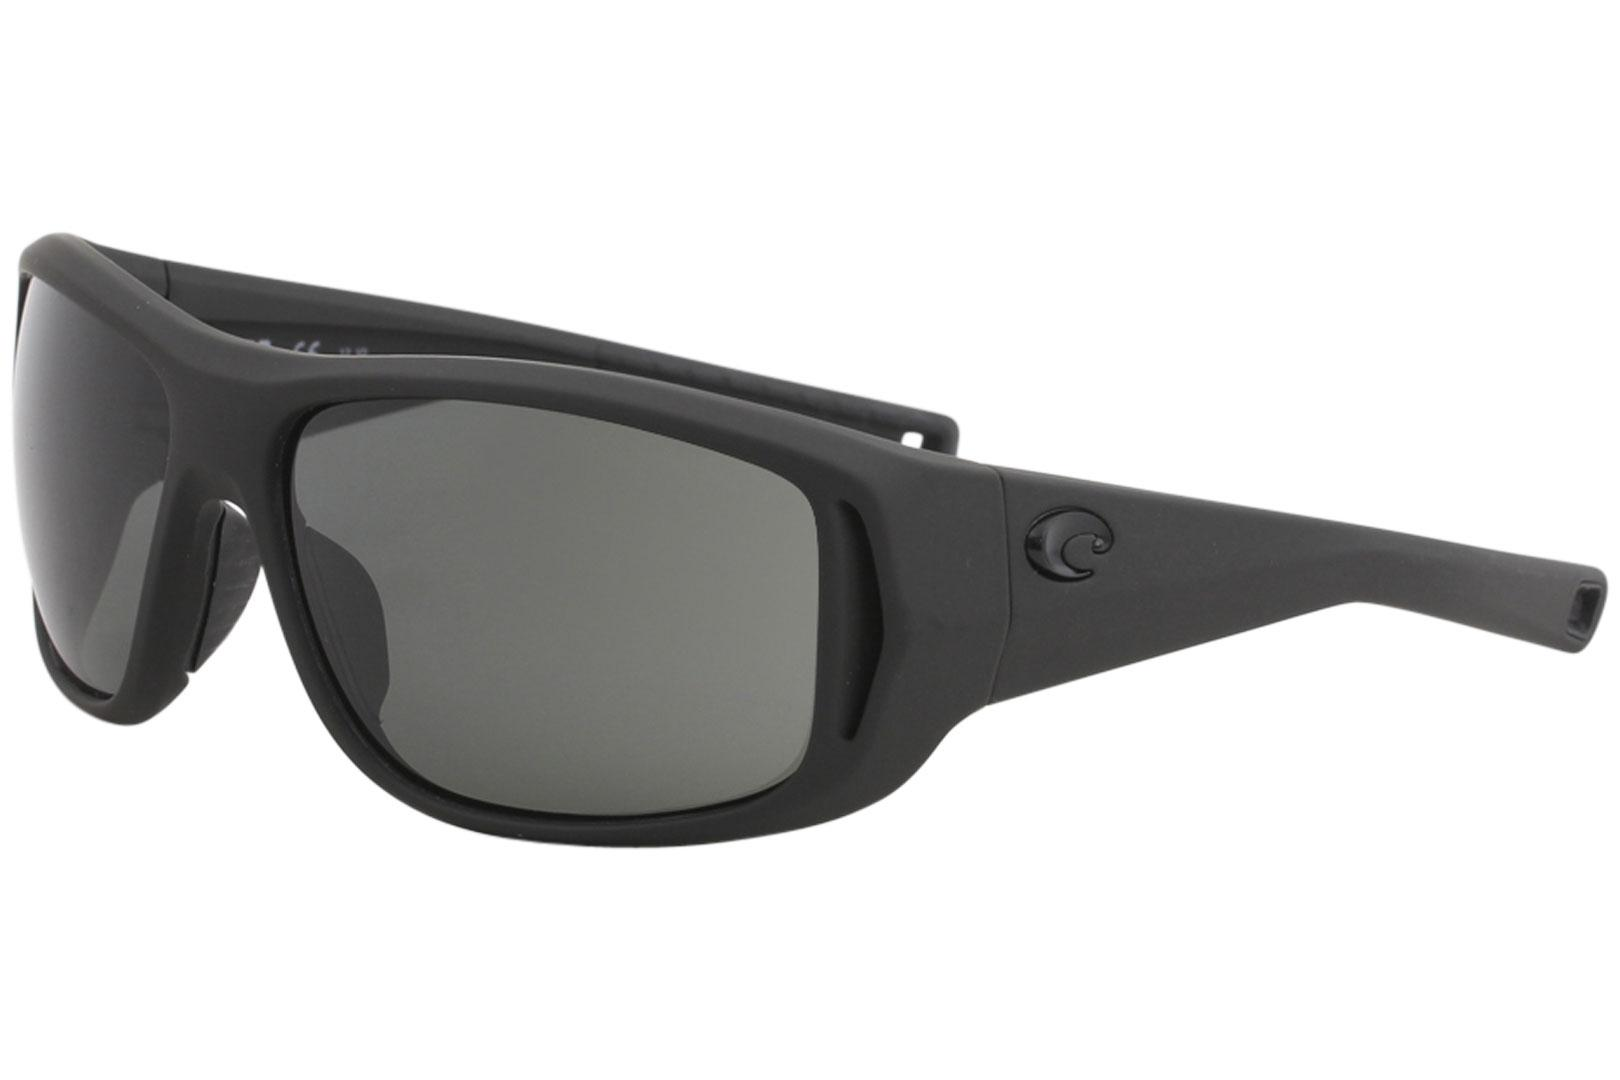 b6d1eef66e ... Men s Montauk Fashion Wrap Polarized Sunglasses by Costa Del Mar. Touch  to zoom